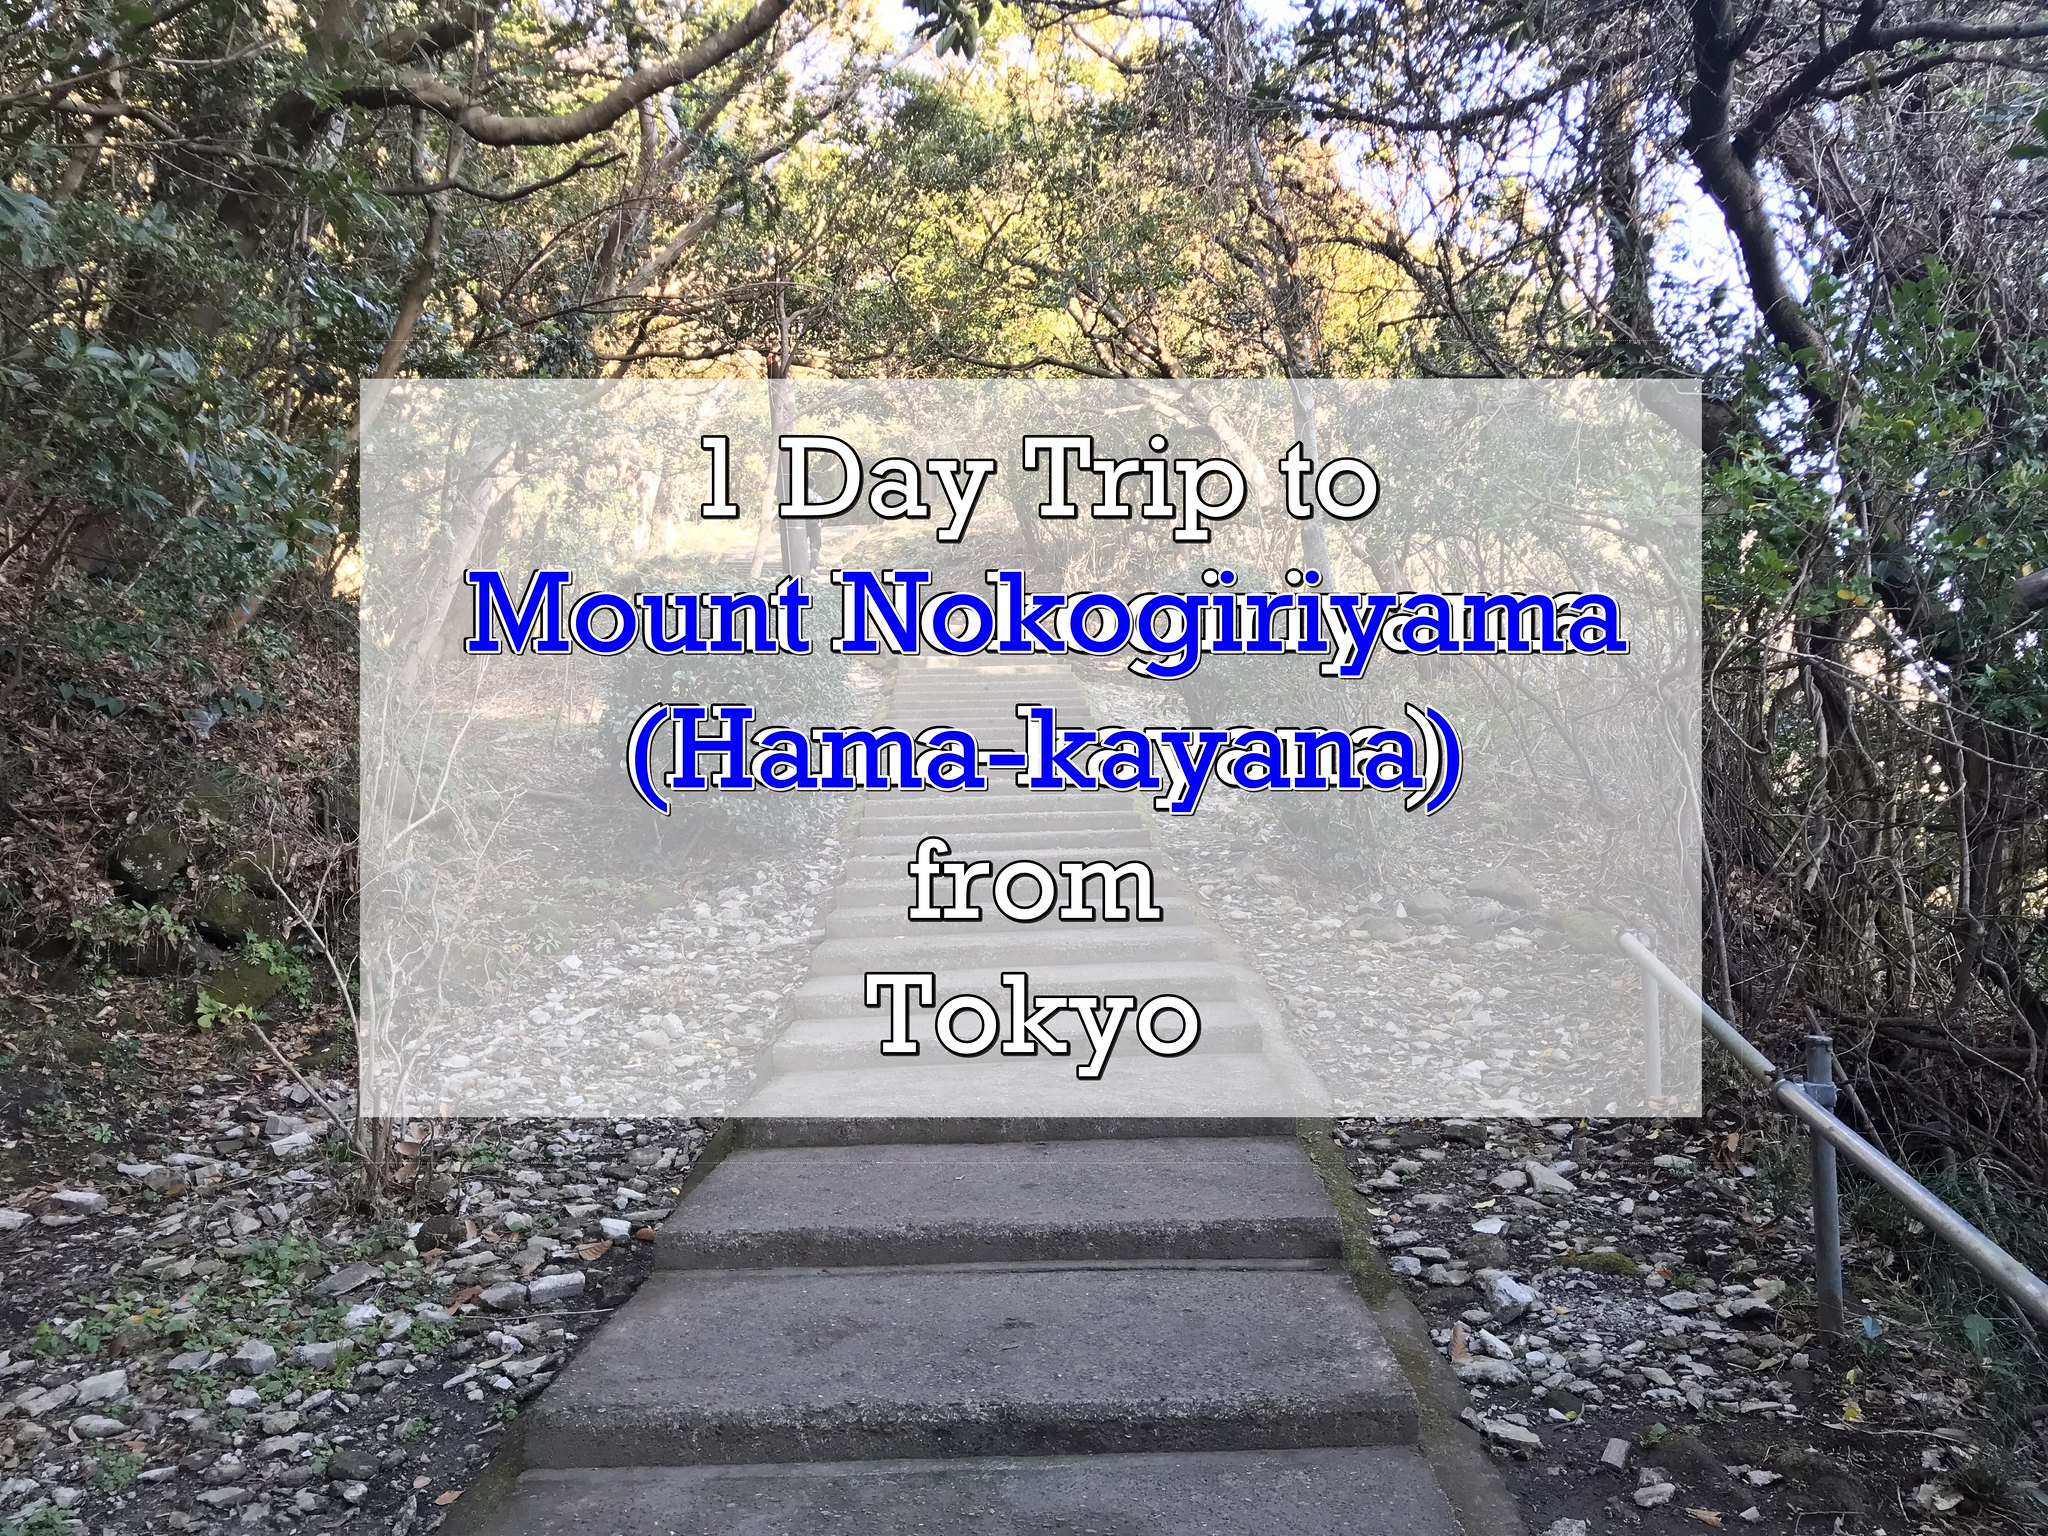 [JAPAN TRAVELS] 1 Day Trip to Mount Nokogiriyama ( Hamakayana) from Tokyo